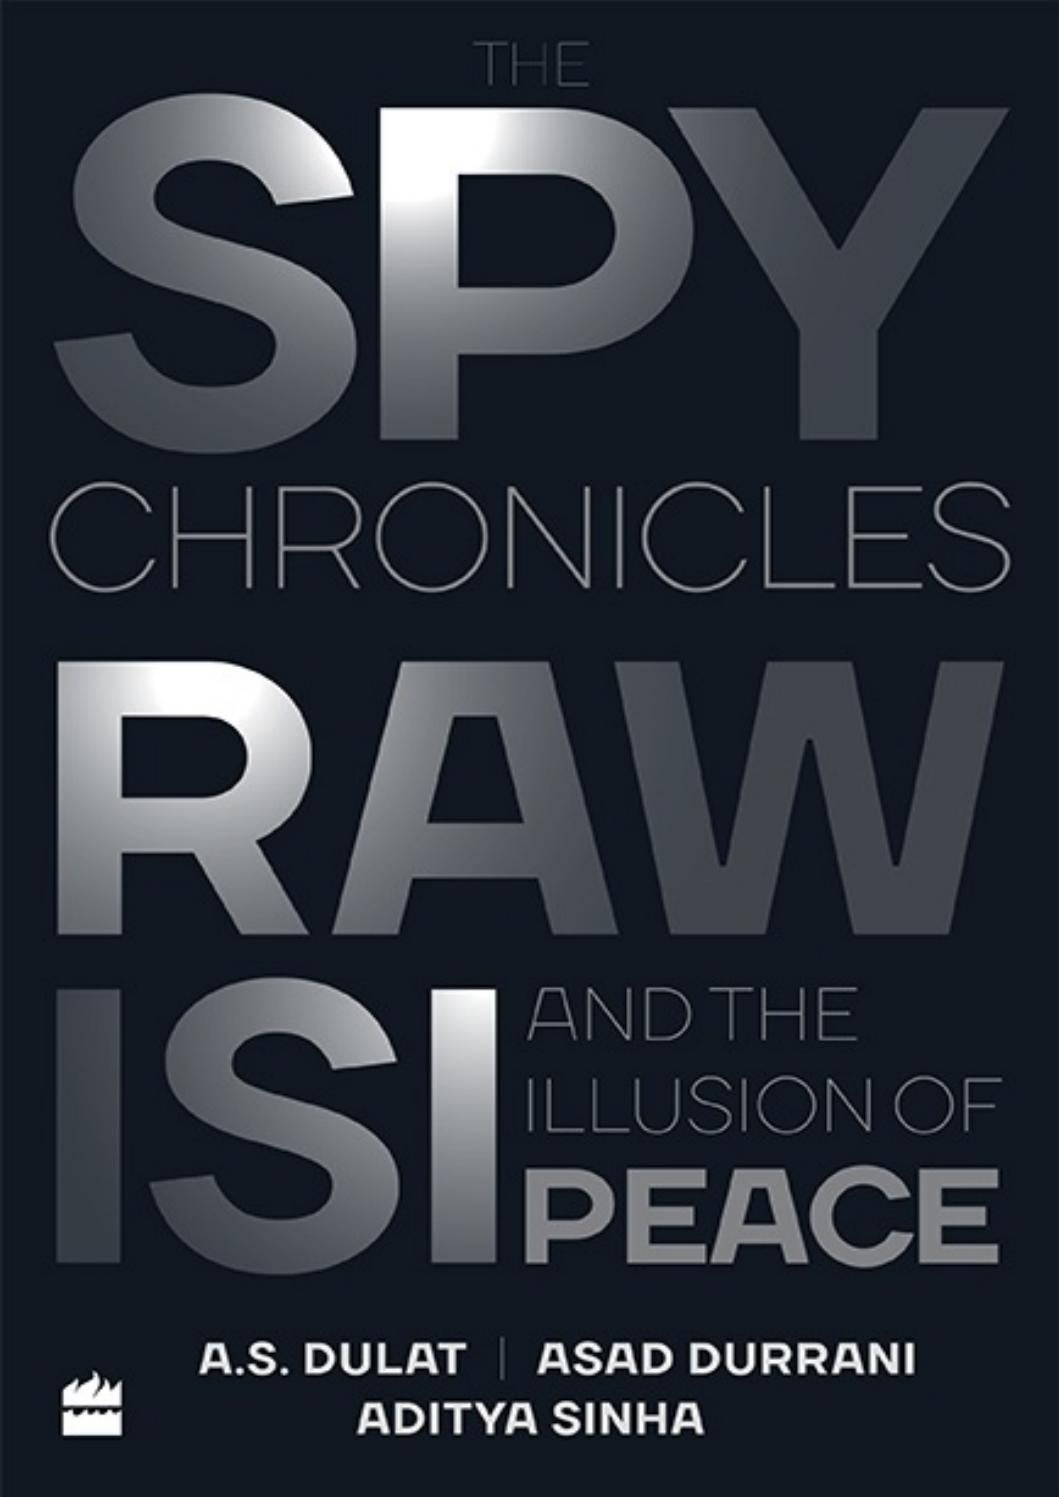 The spy chronicles raw%2c isi and the illus a s by Jawaid A